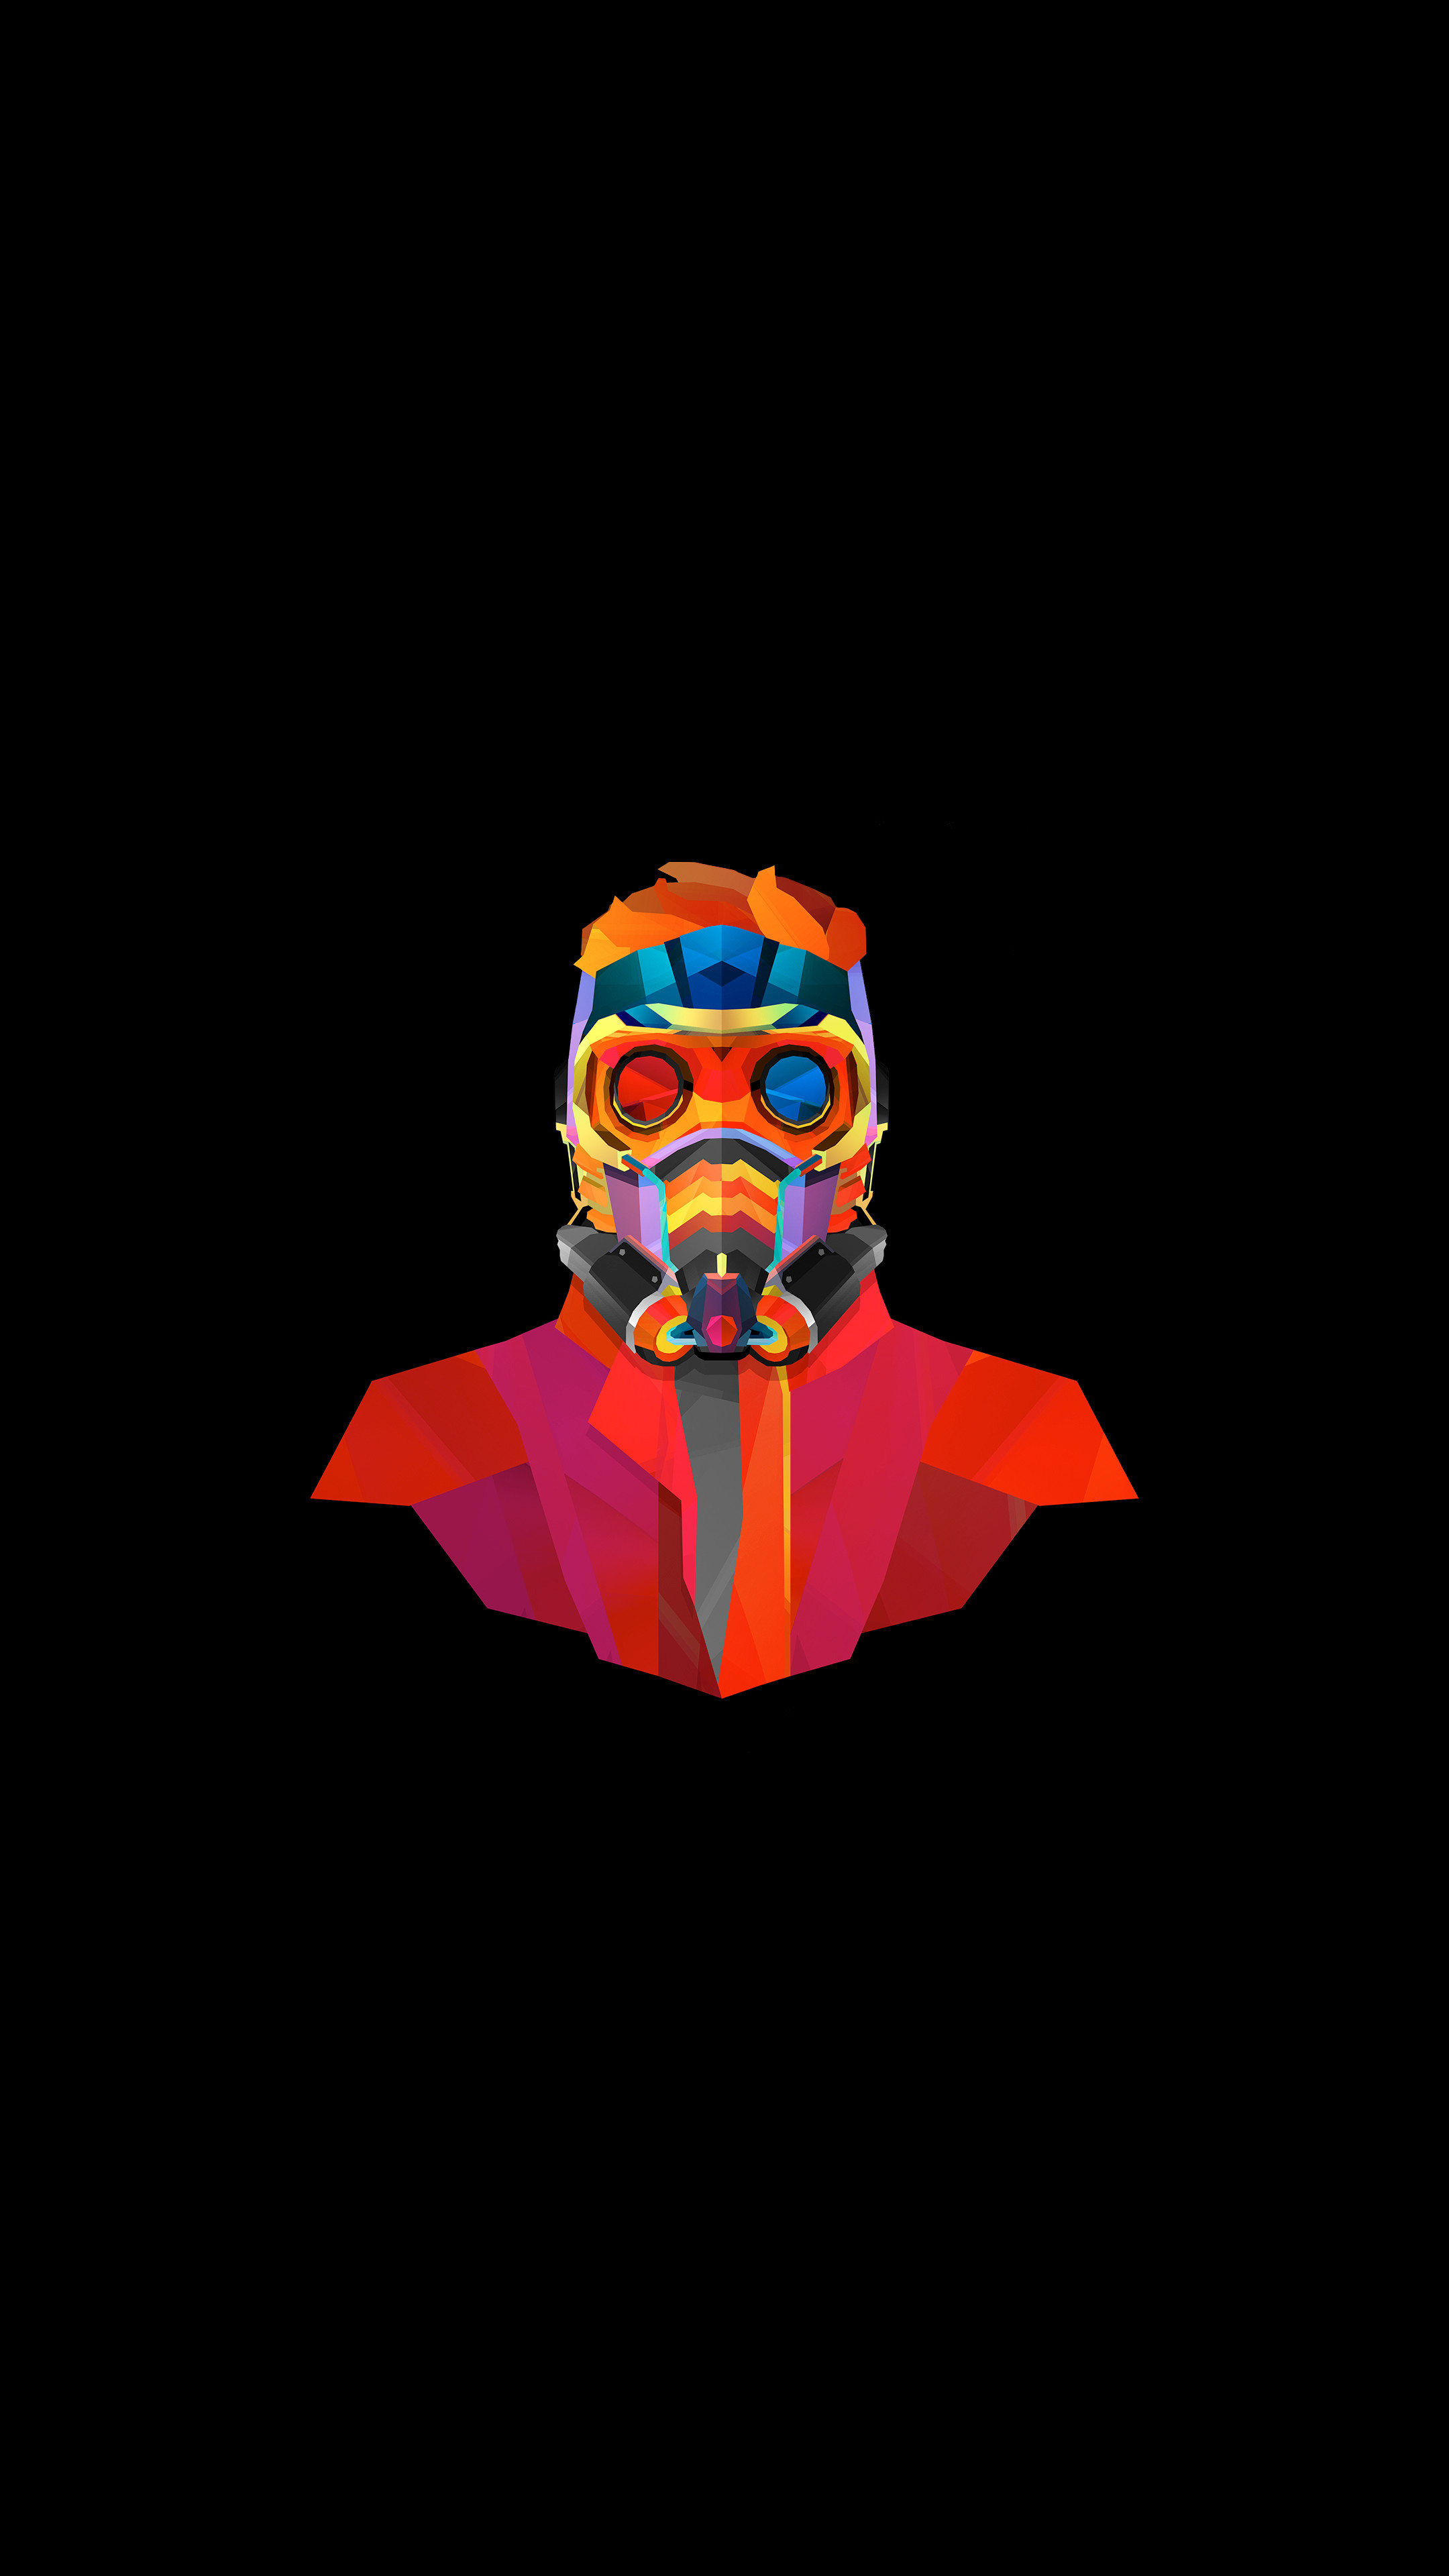 Star lord wallpapers 72 pictures - Art wallpaper 2160x3840 ...